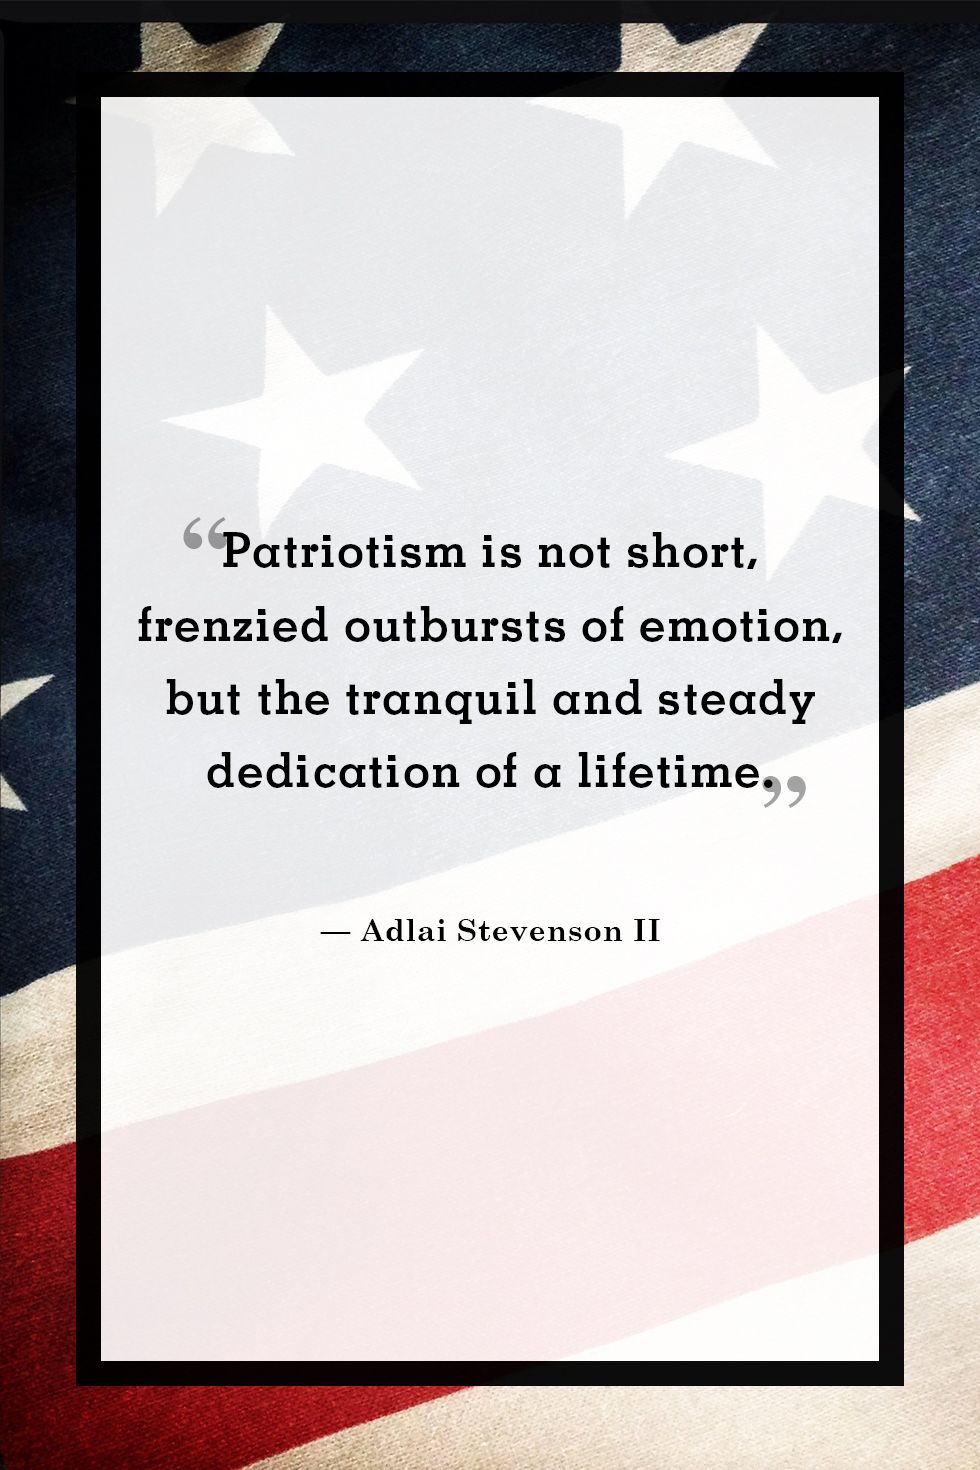 Fallen Soldier Quotes 10 Famous Memorial Day Quotes That Honor America's Fallen Heroes